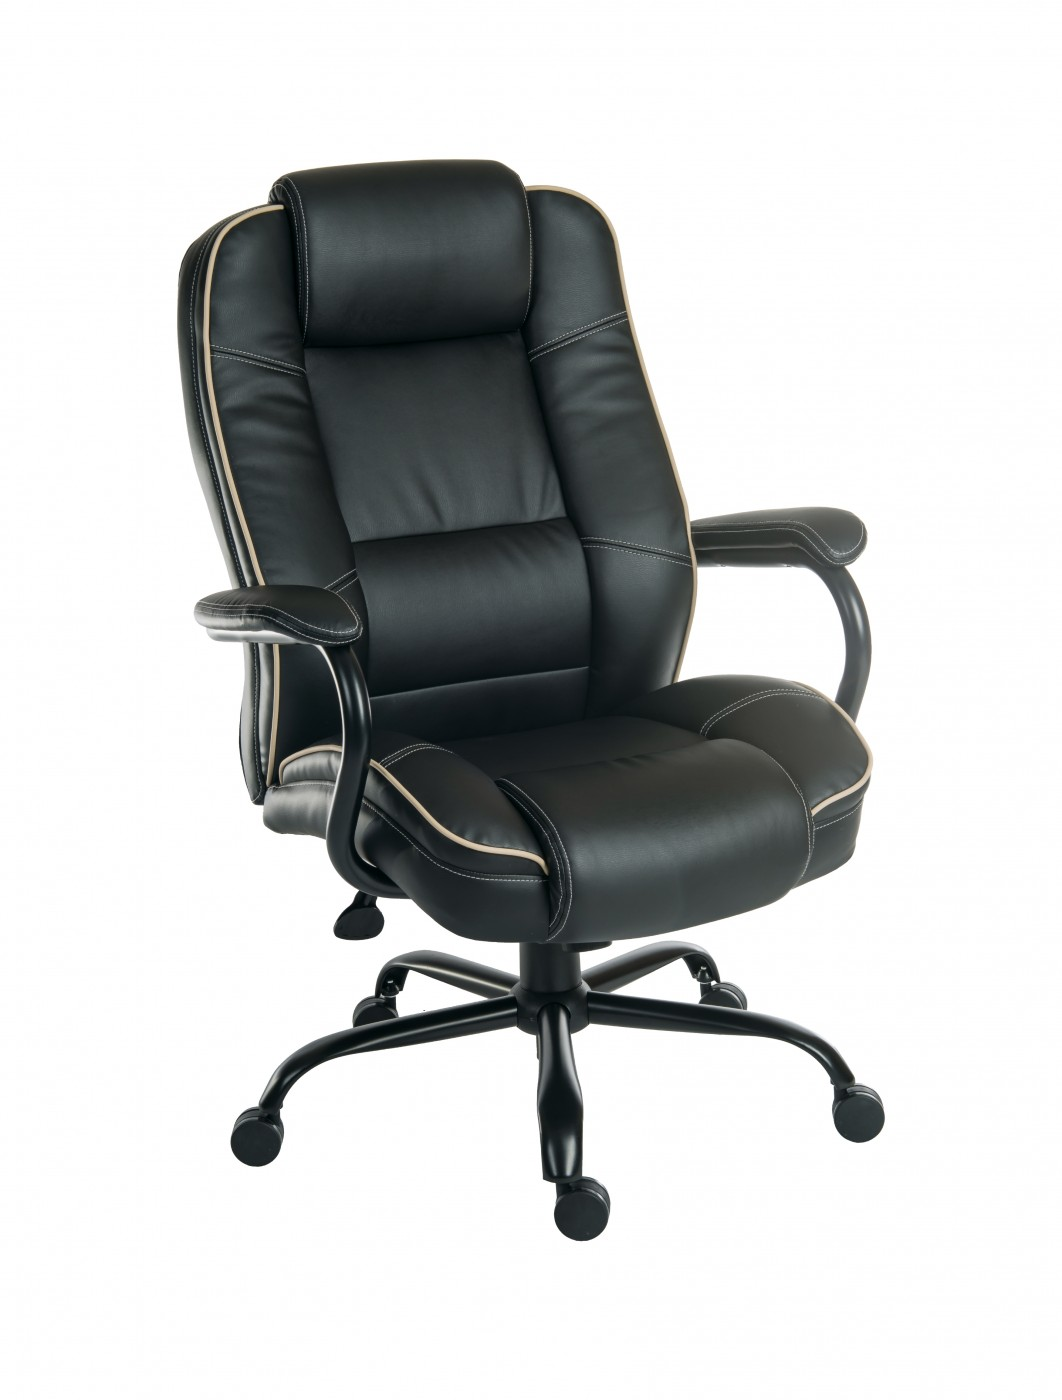 Executive Chair Teknik Goliath Duo Heavy Duty Office Chair 6925blk 121